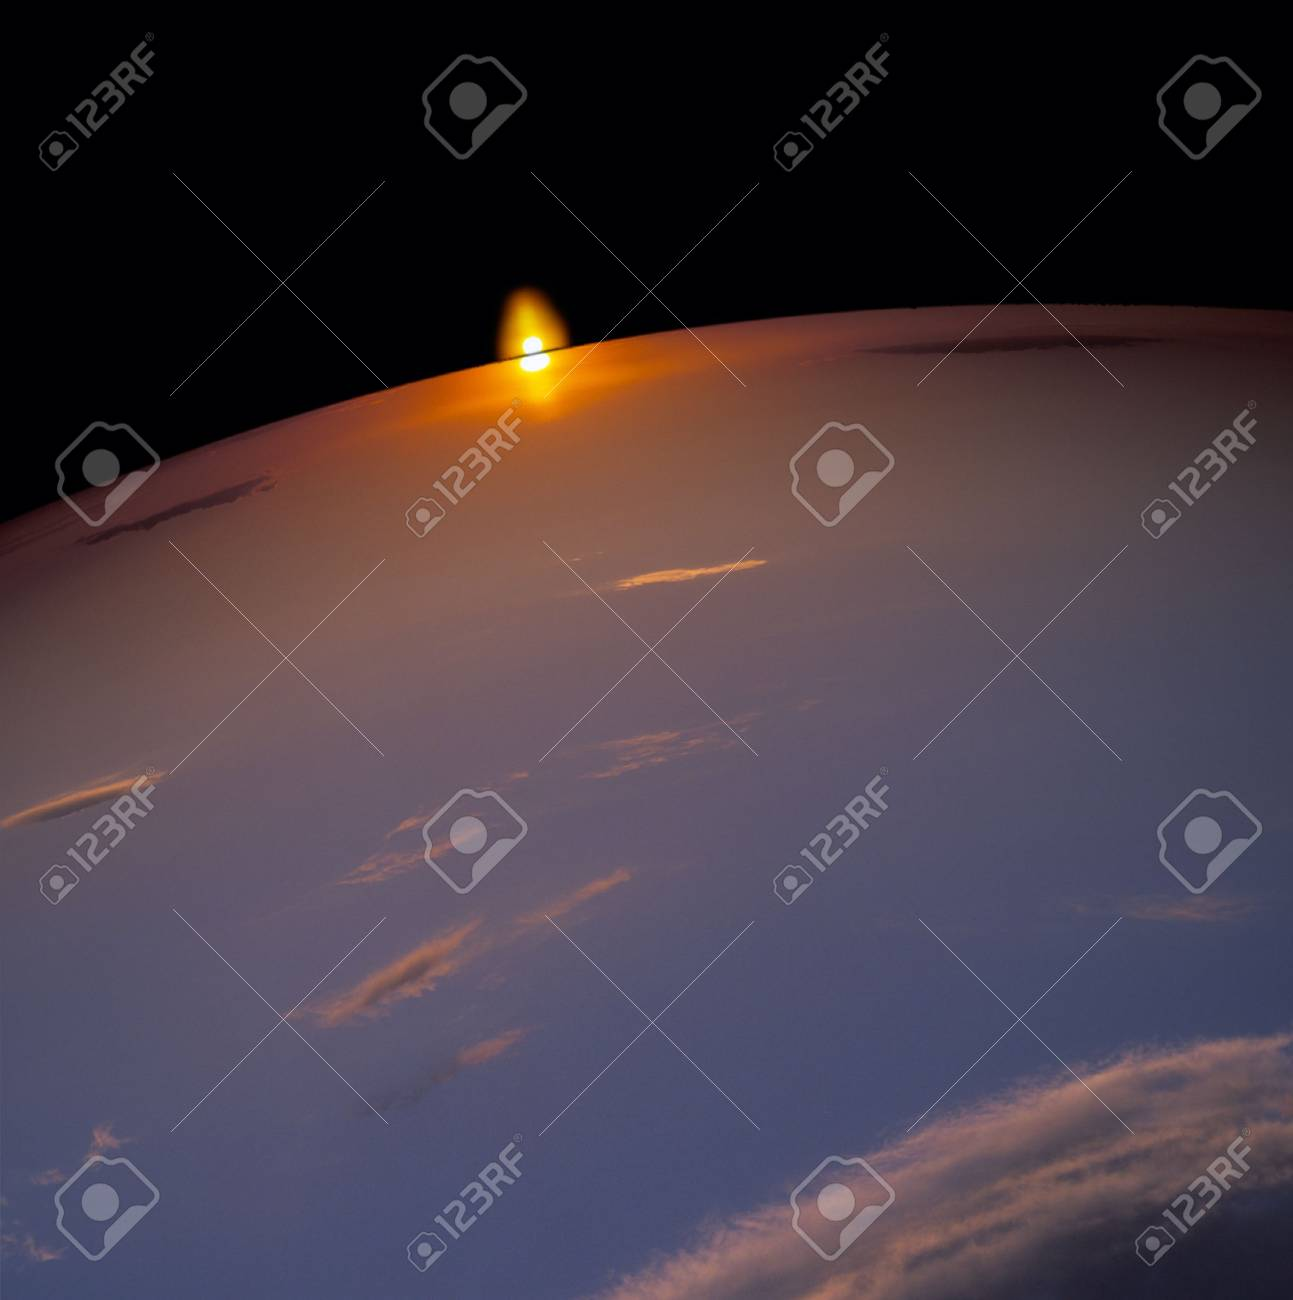 Sunset beyond the planet. Stock Photo - 7857734